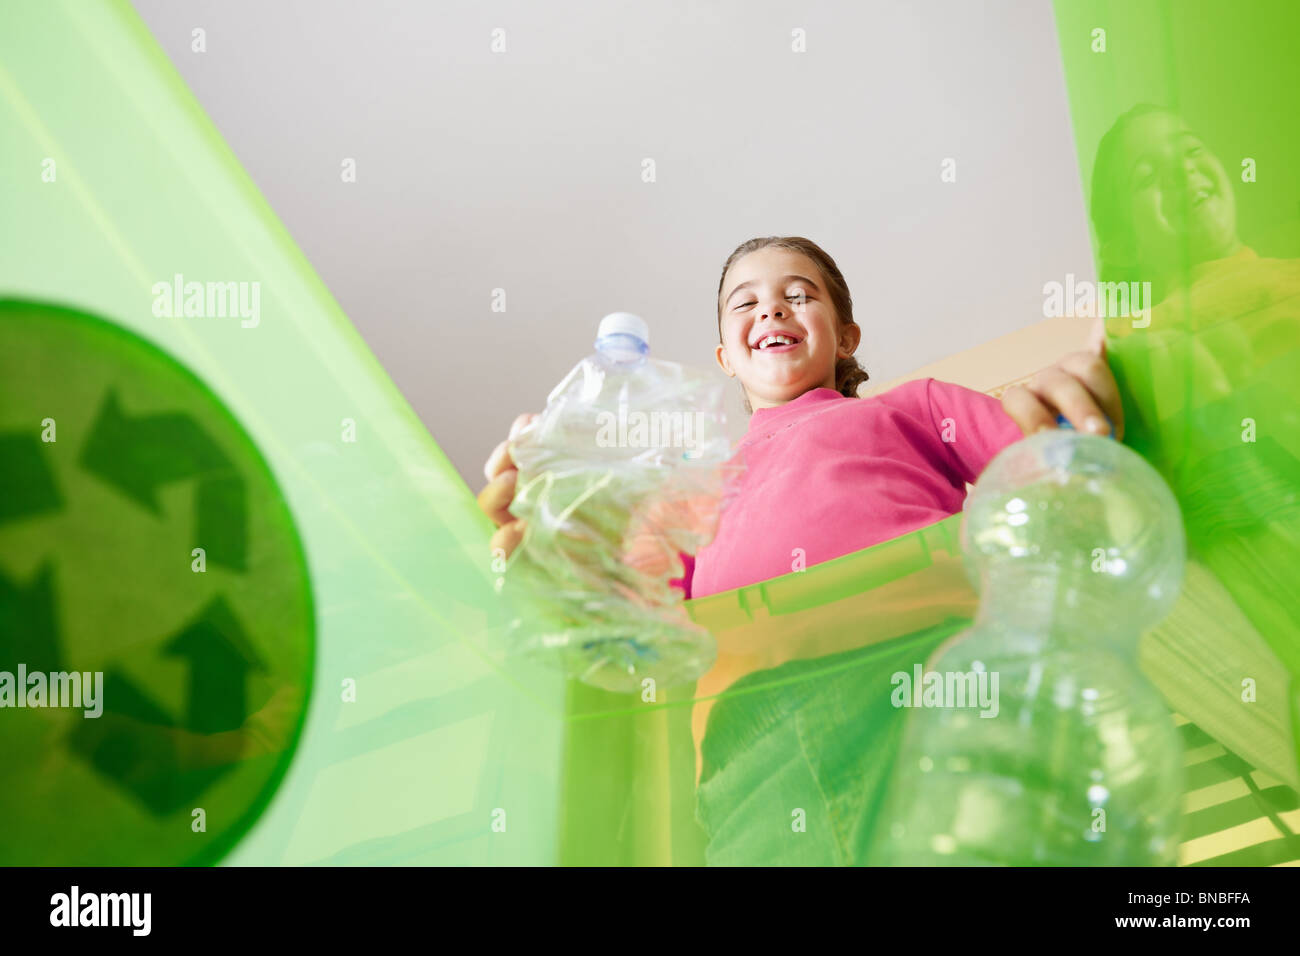 Girl holding plastic bottles for recycling, viewed from inside recycling bin. Copy space - Stock Image